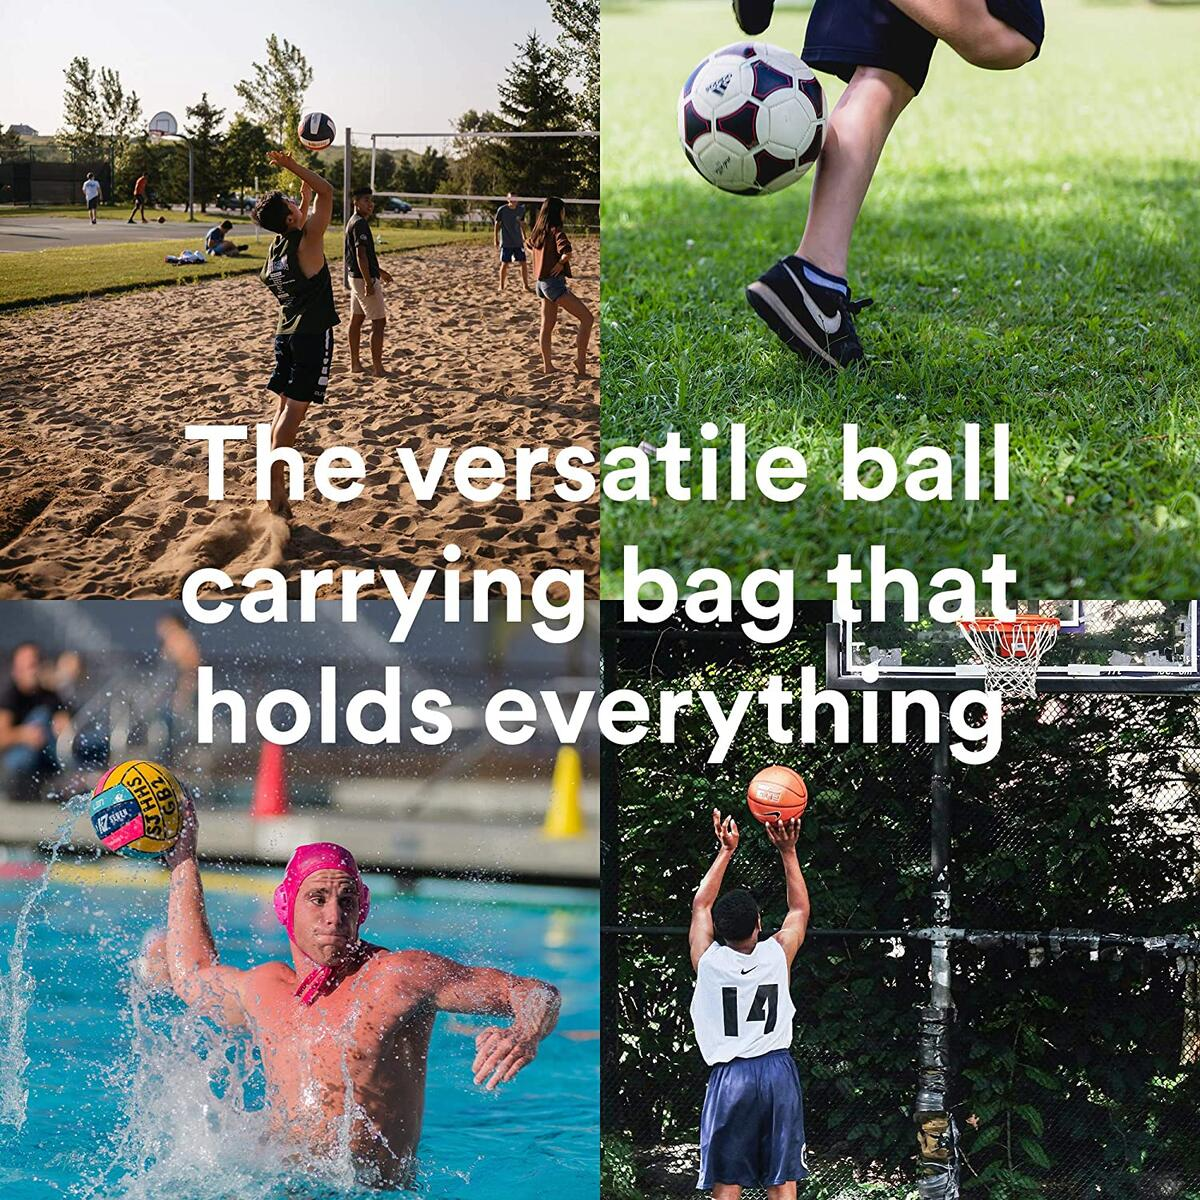 Fitdom Heavy Duty XL Basketball Mesh Equipment Ball Bag w/Adjustable Shoulder Strap Design for Coach with 2 Front Pockets for Coaching & Sport Accessories. This Carrier Can Store Up to 5 Basketballs